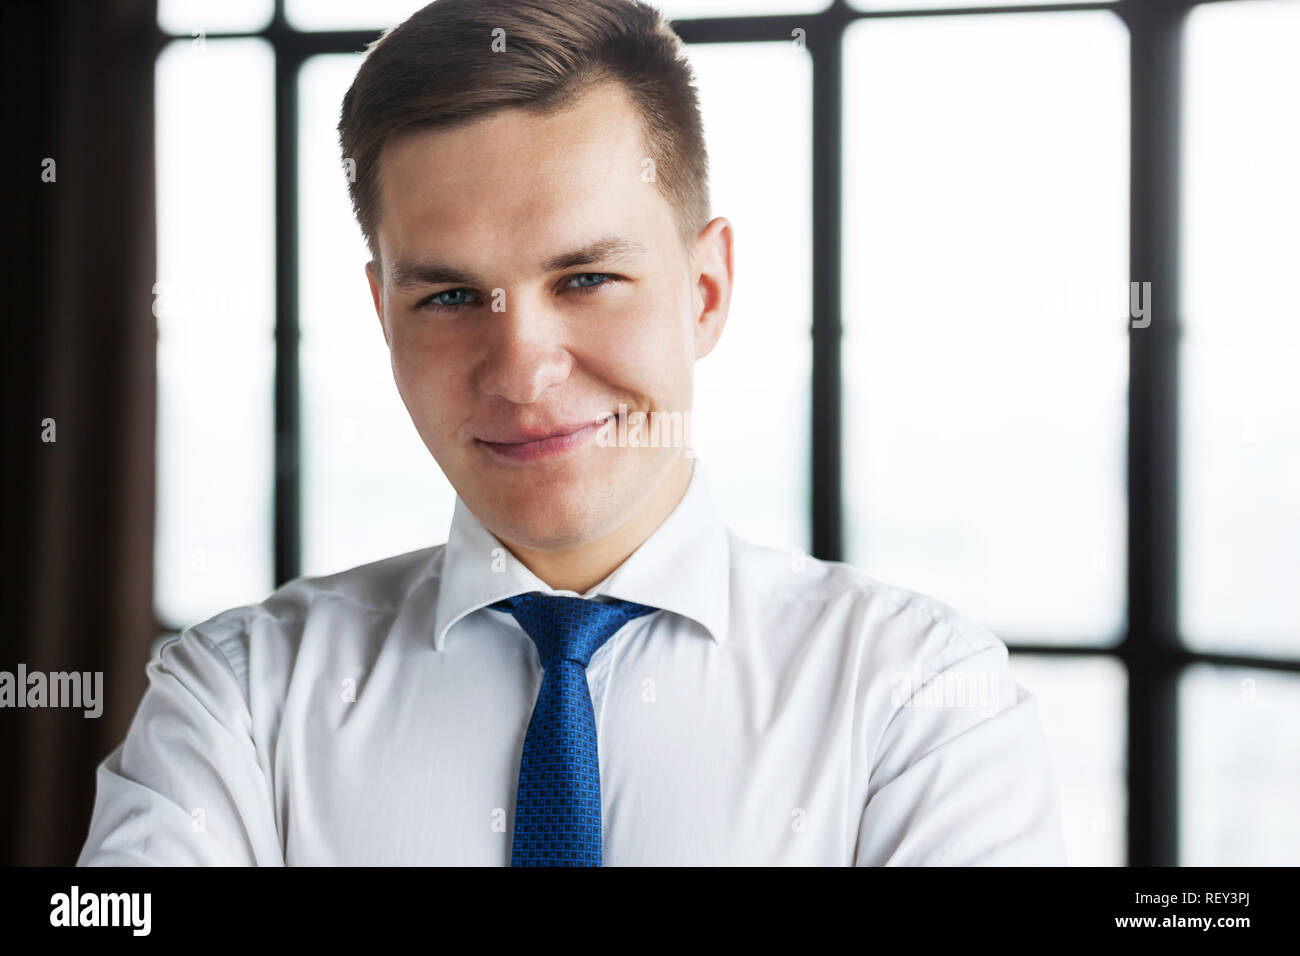 Portrait of confident young business man looking at camera. - Stock Image